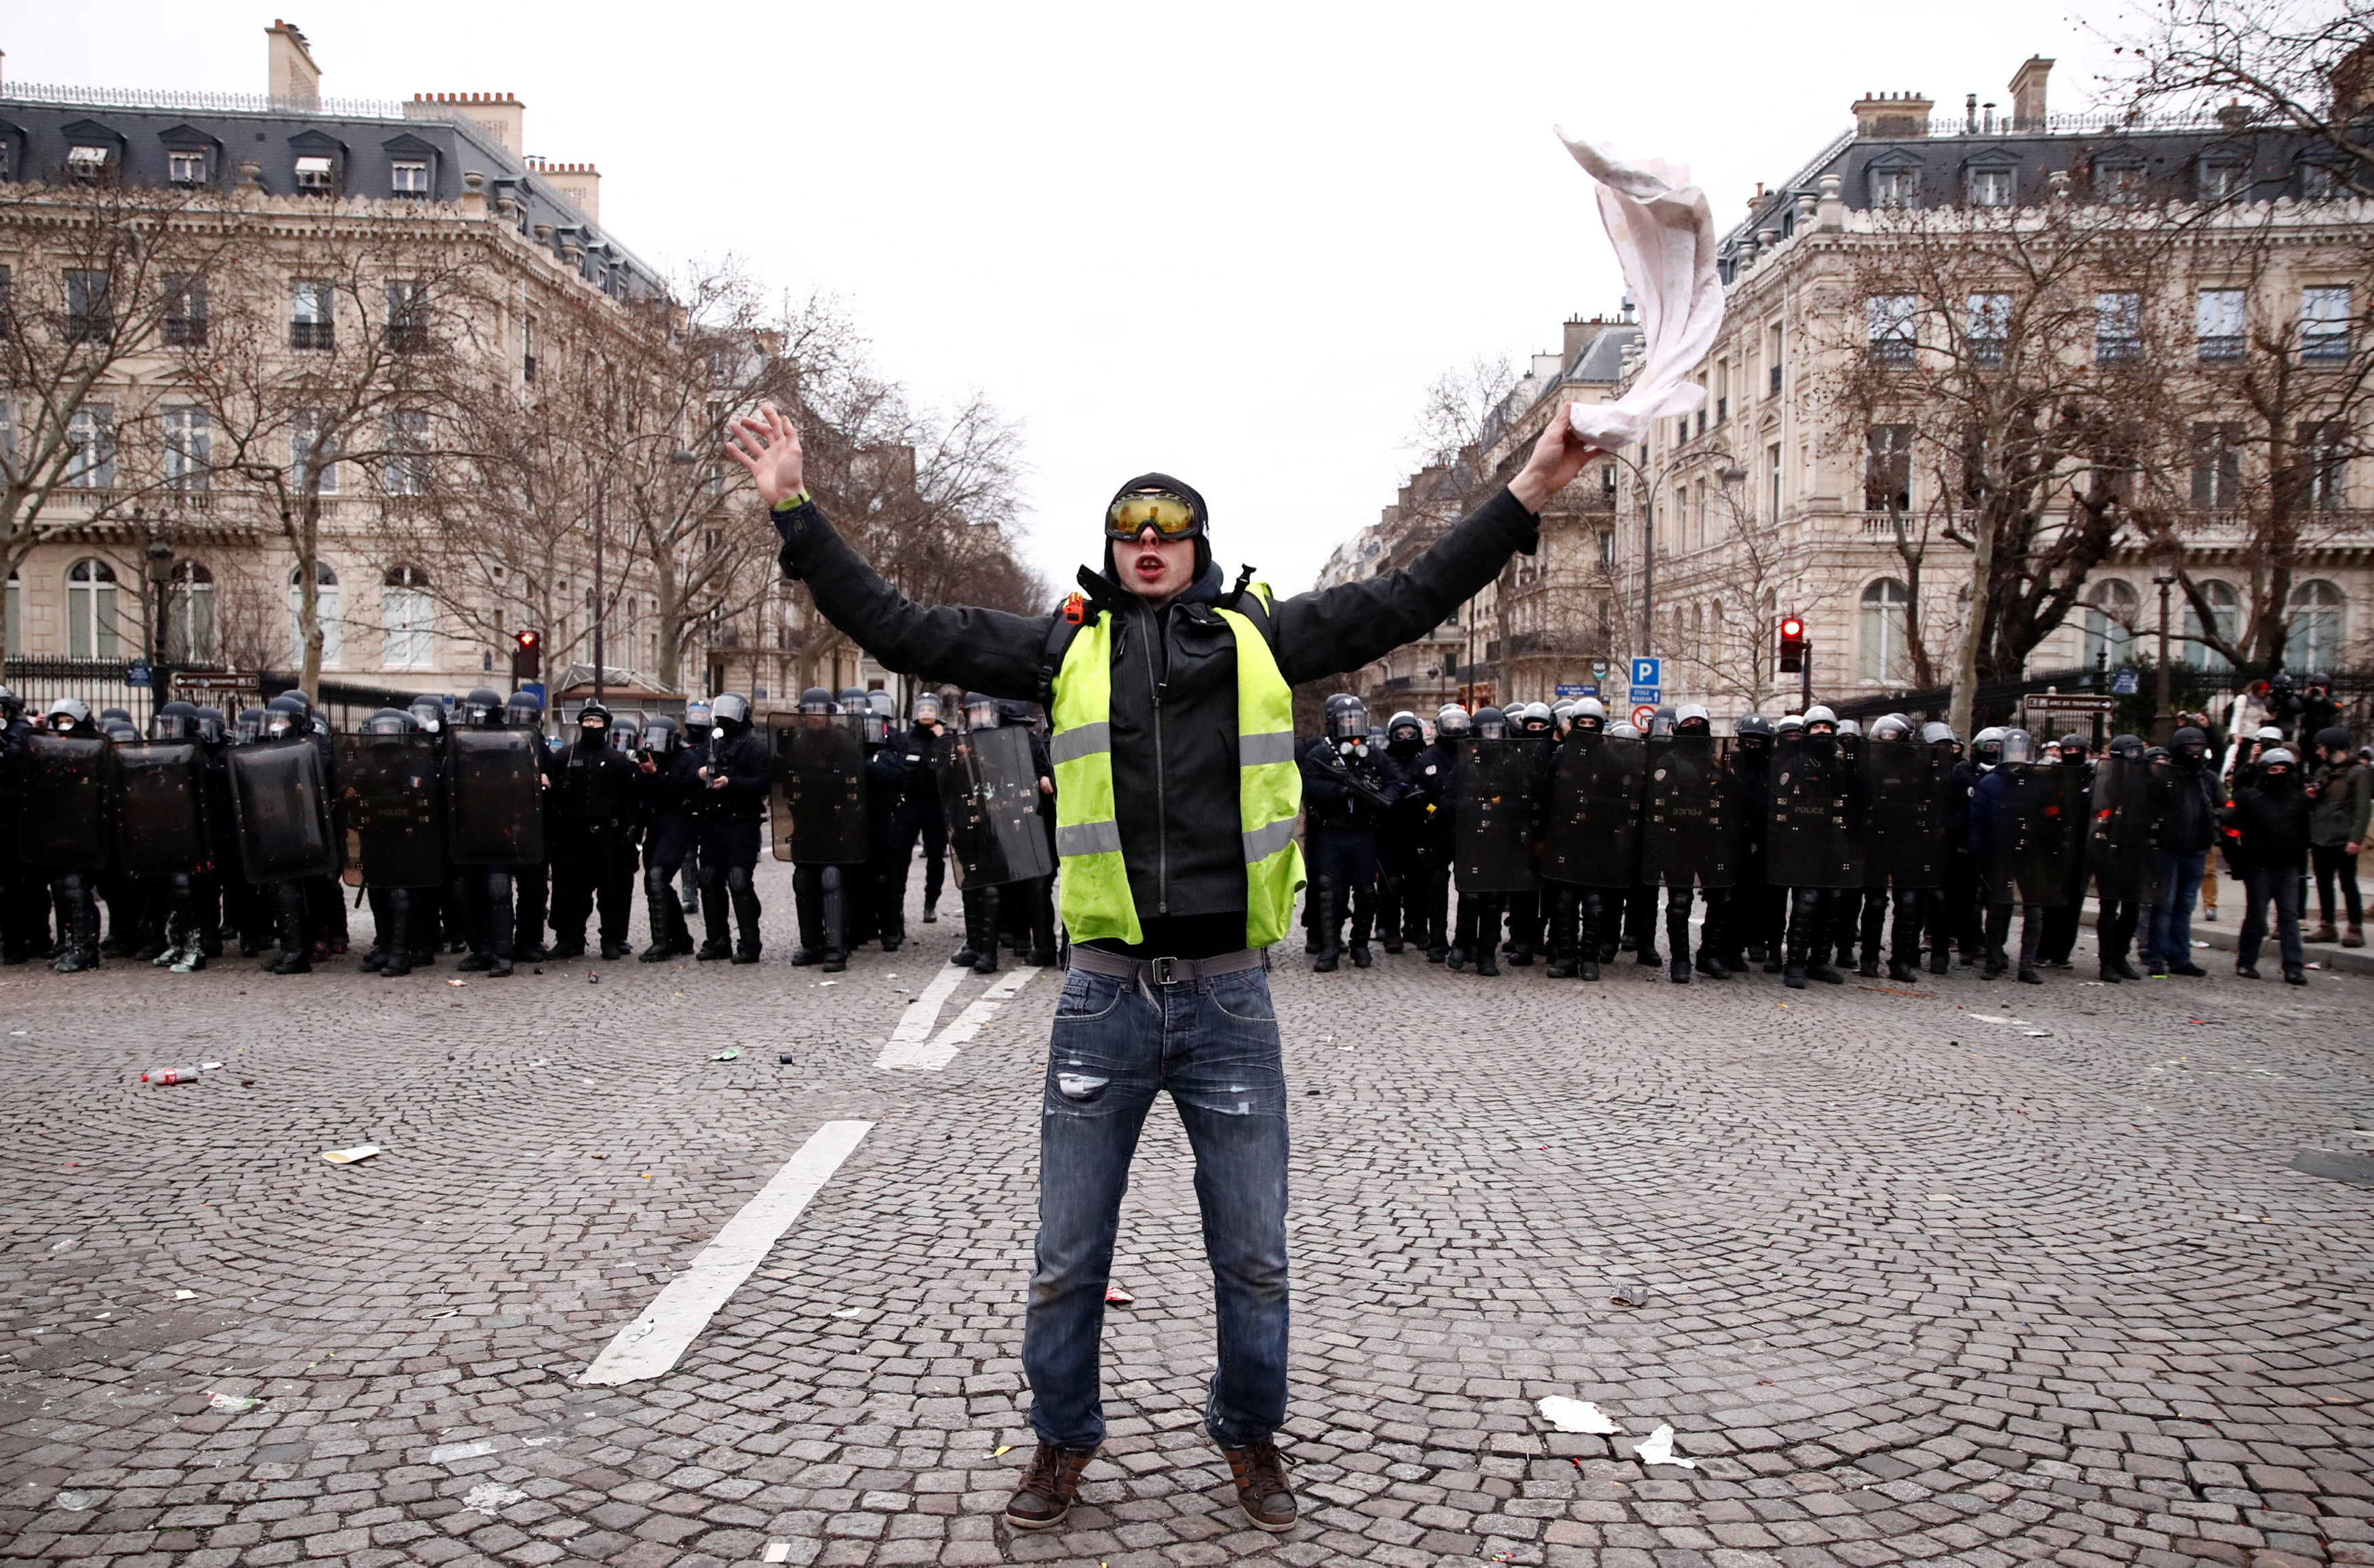 2019-01-12T143318Z_1752817909_RC1E8472EFC0_RTRMADP_3_FRANCE-PROTESTS